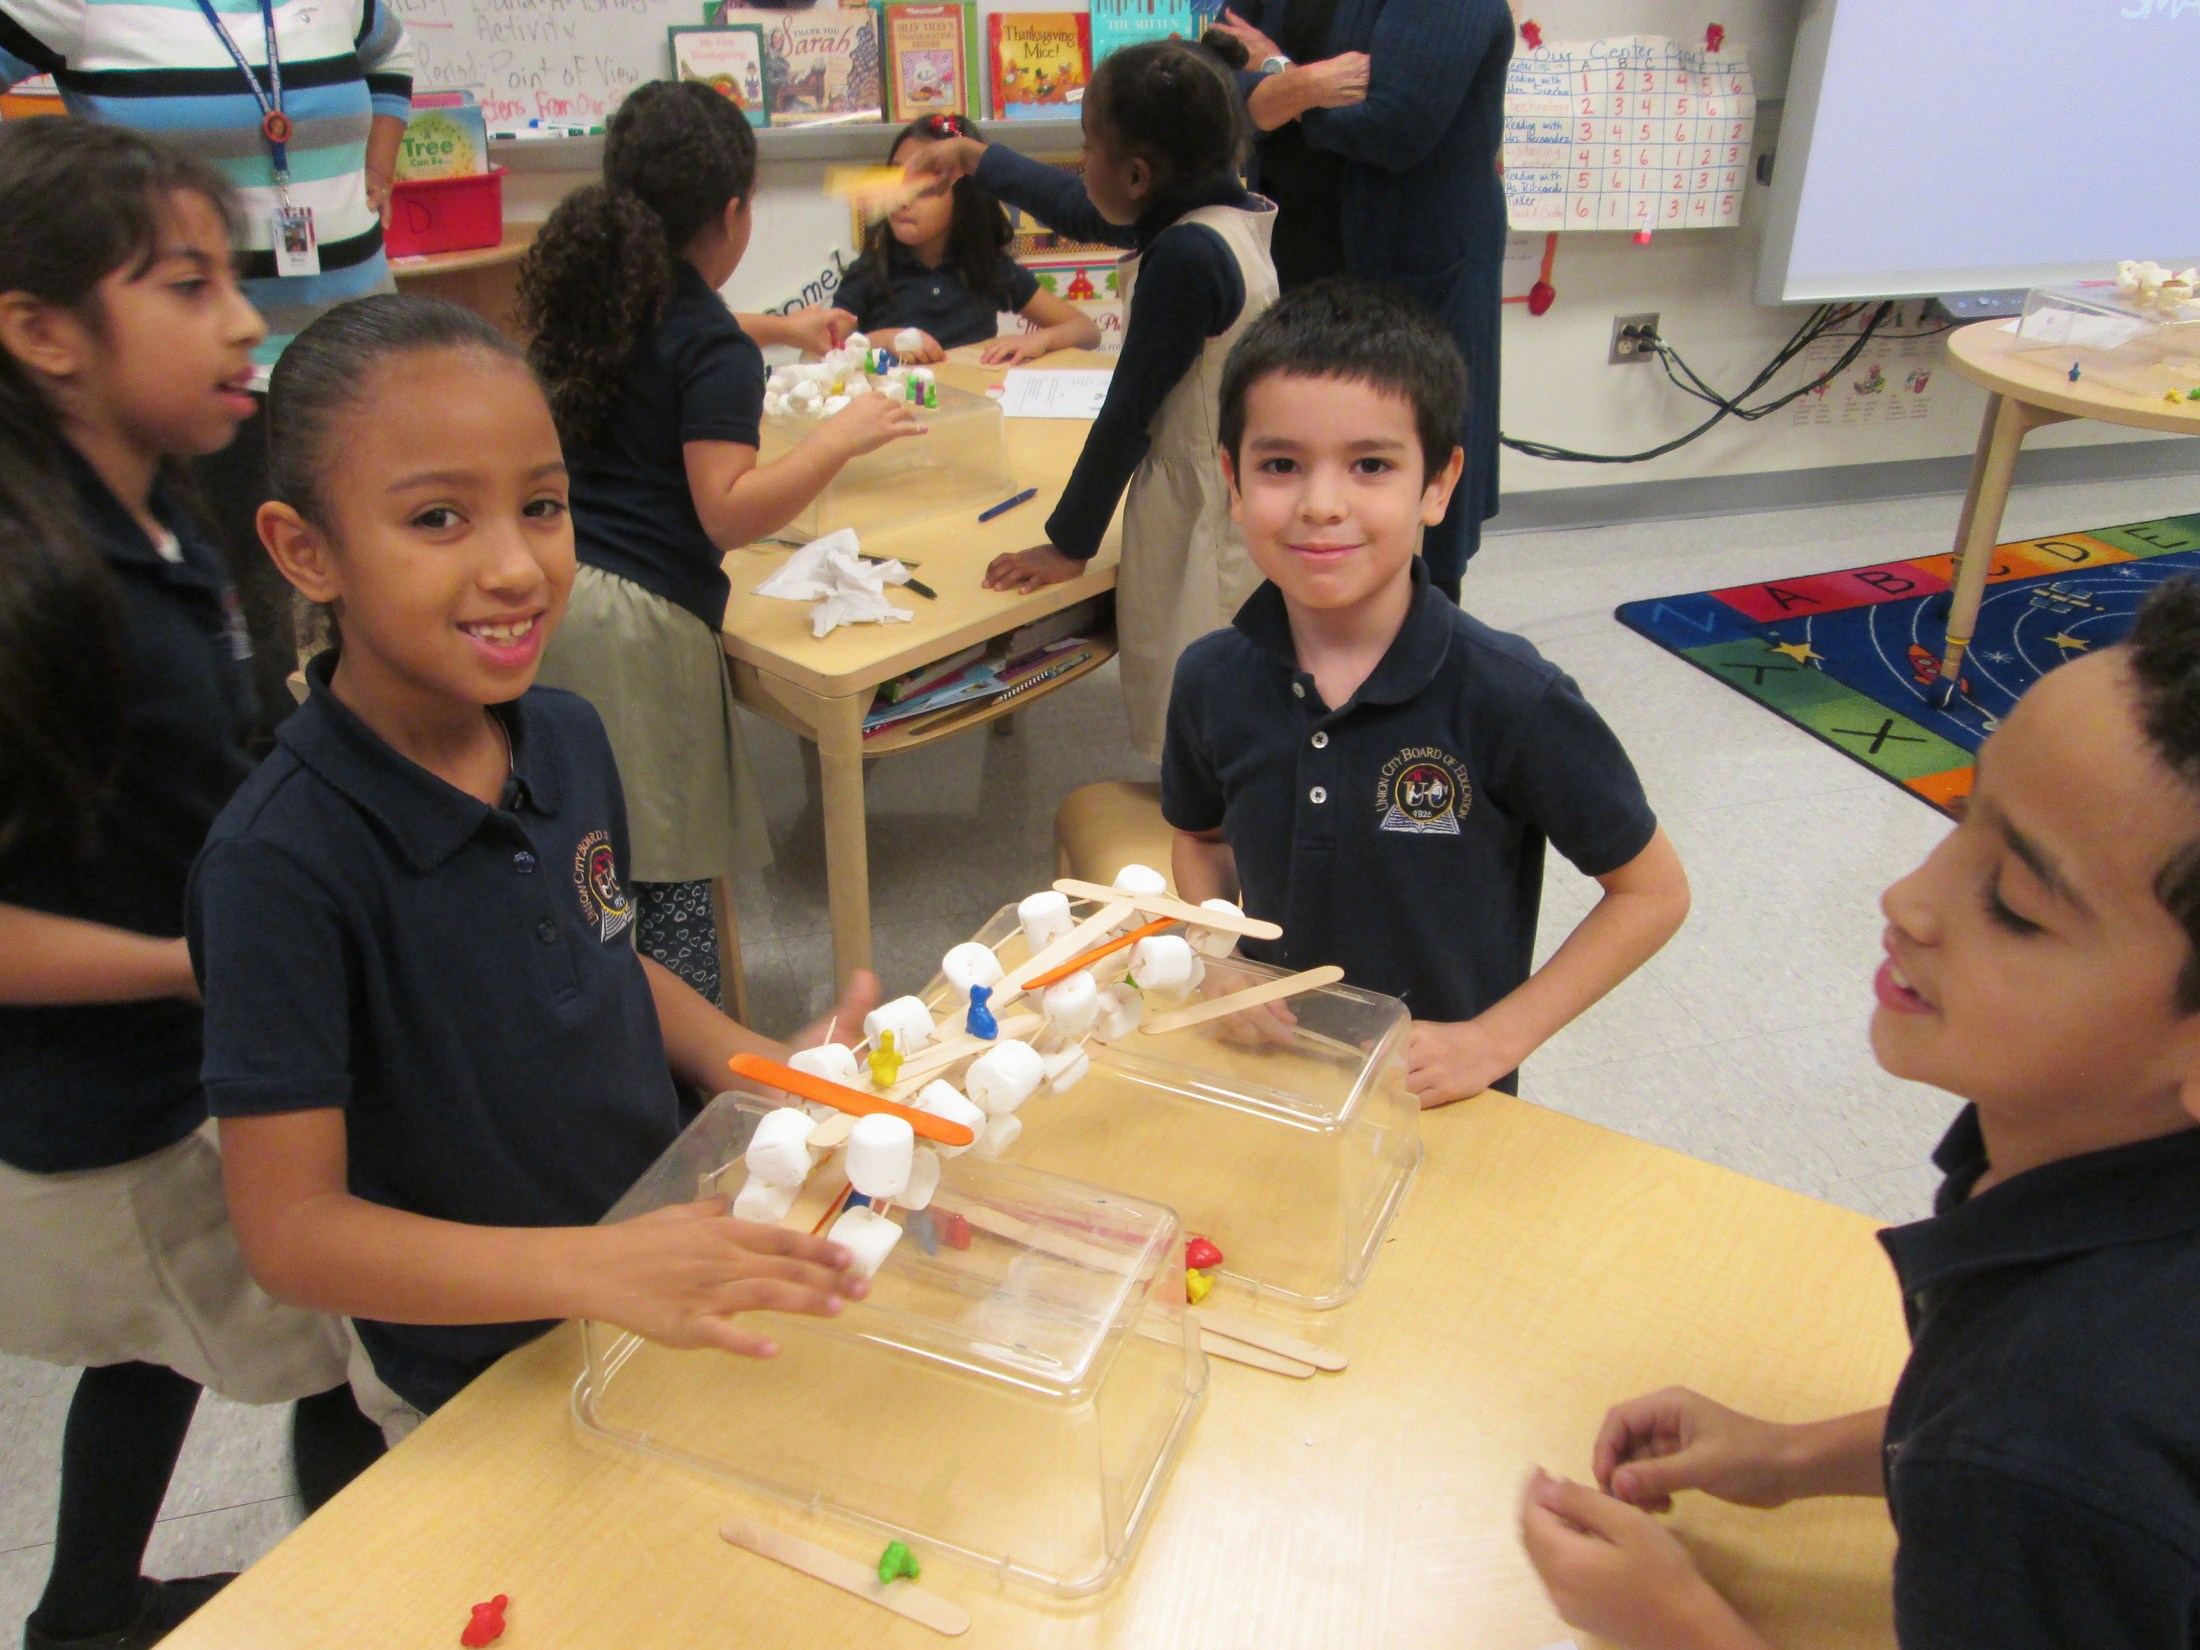 using marshmallows to recreate a cell